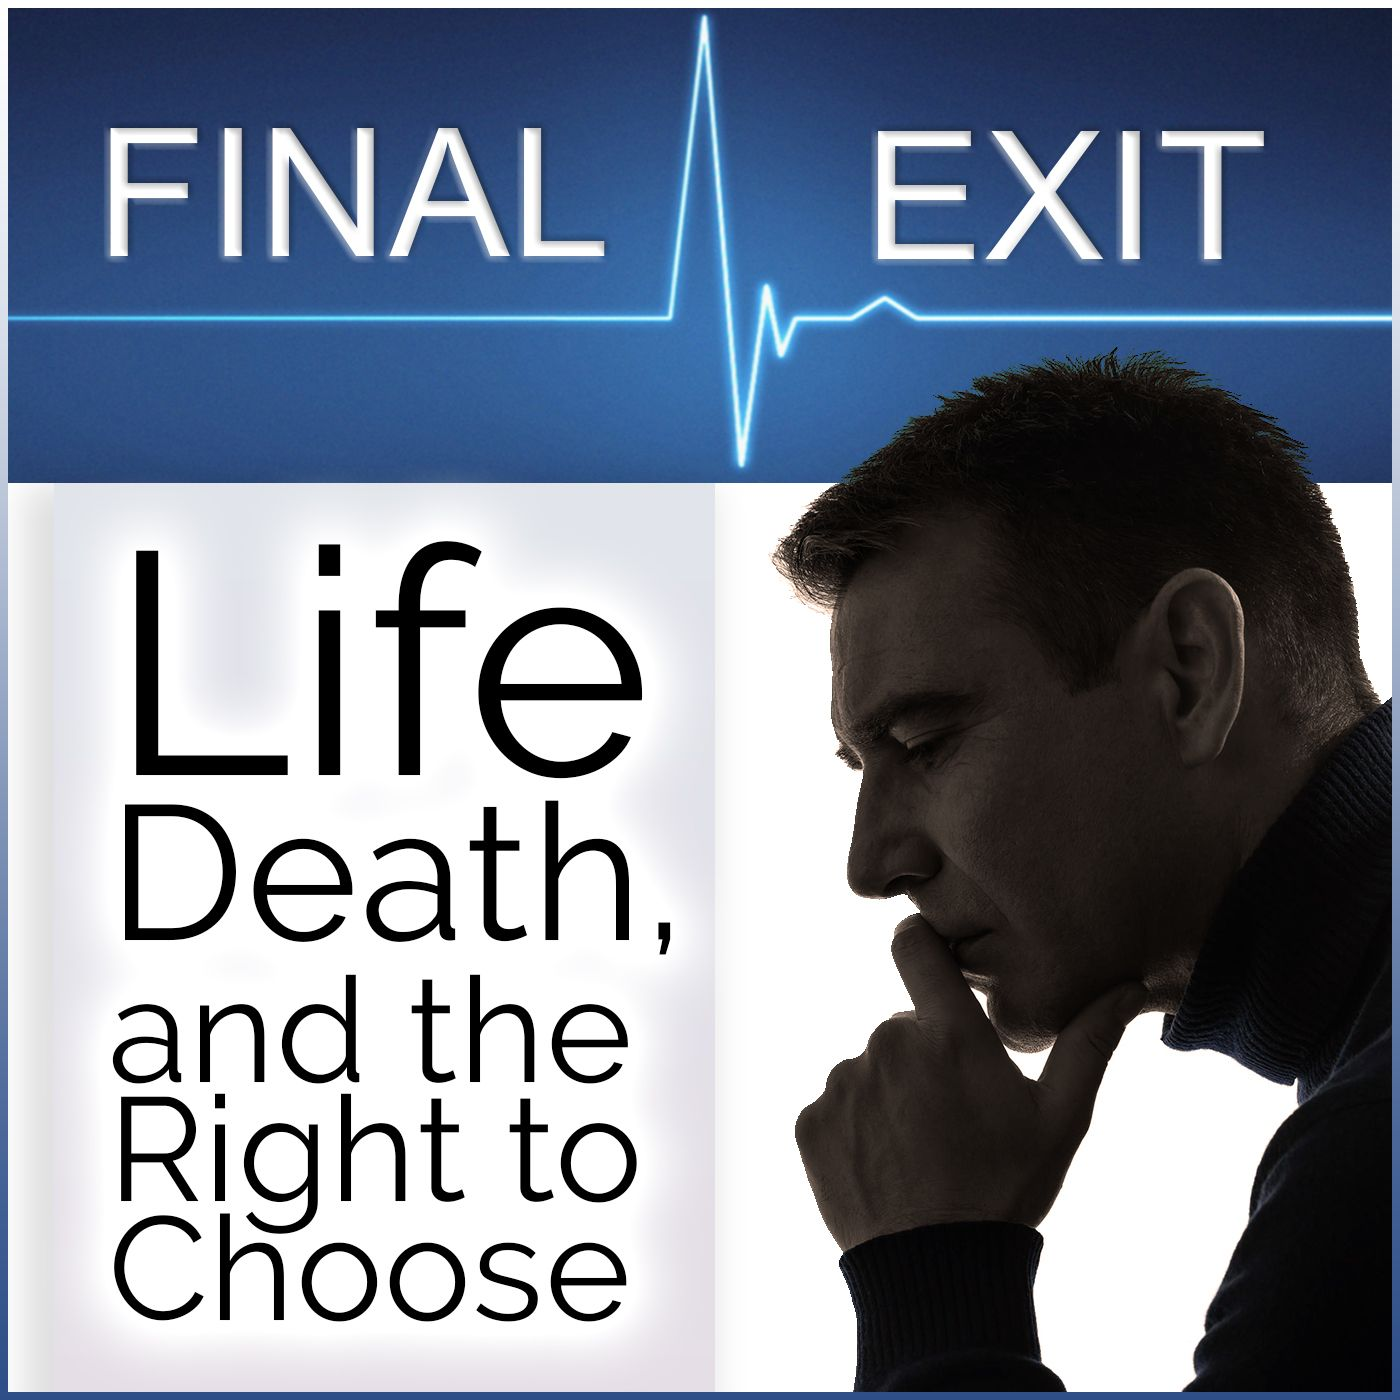 Final Exit: Life, Death, and the Right to Choose